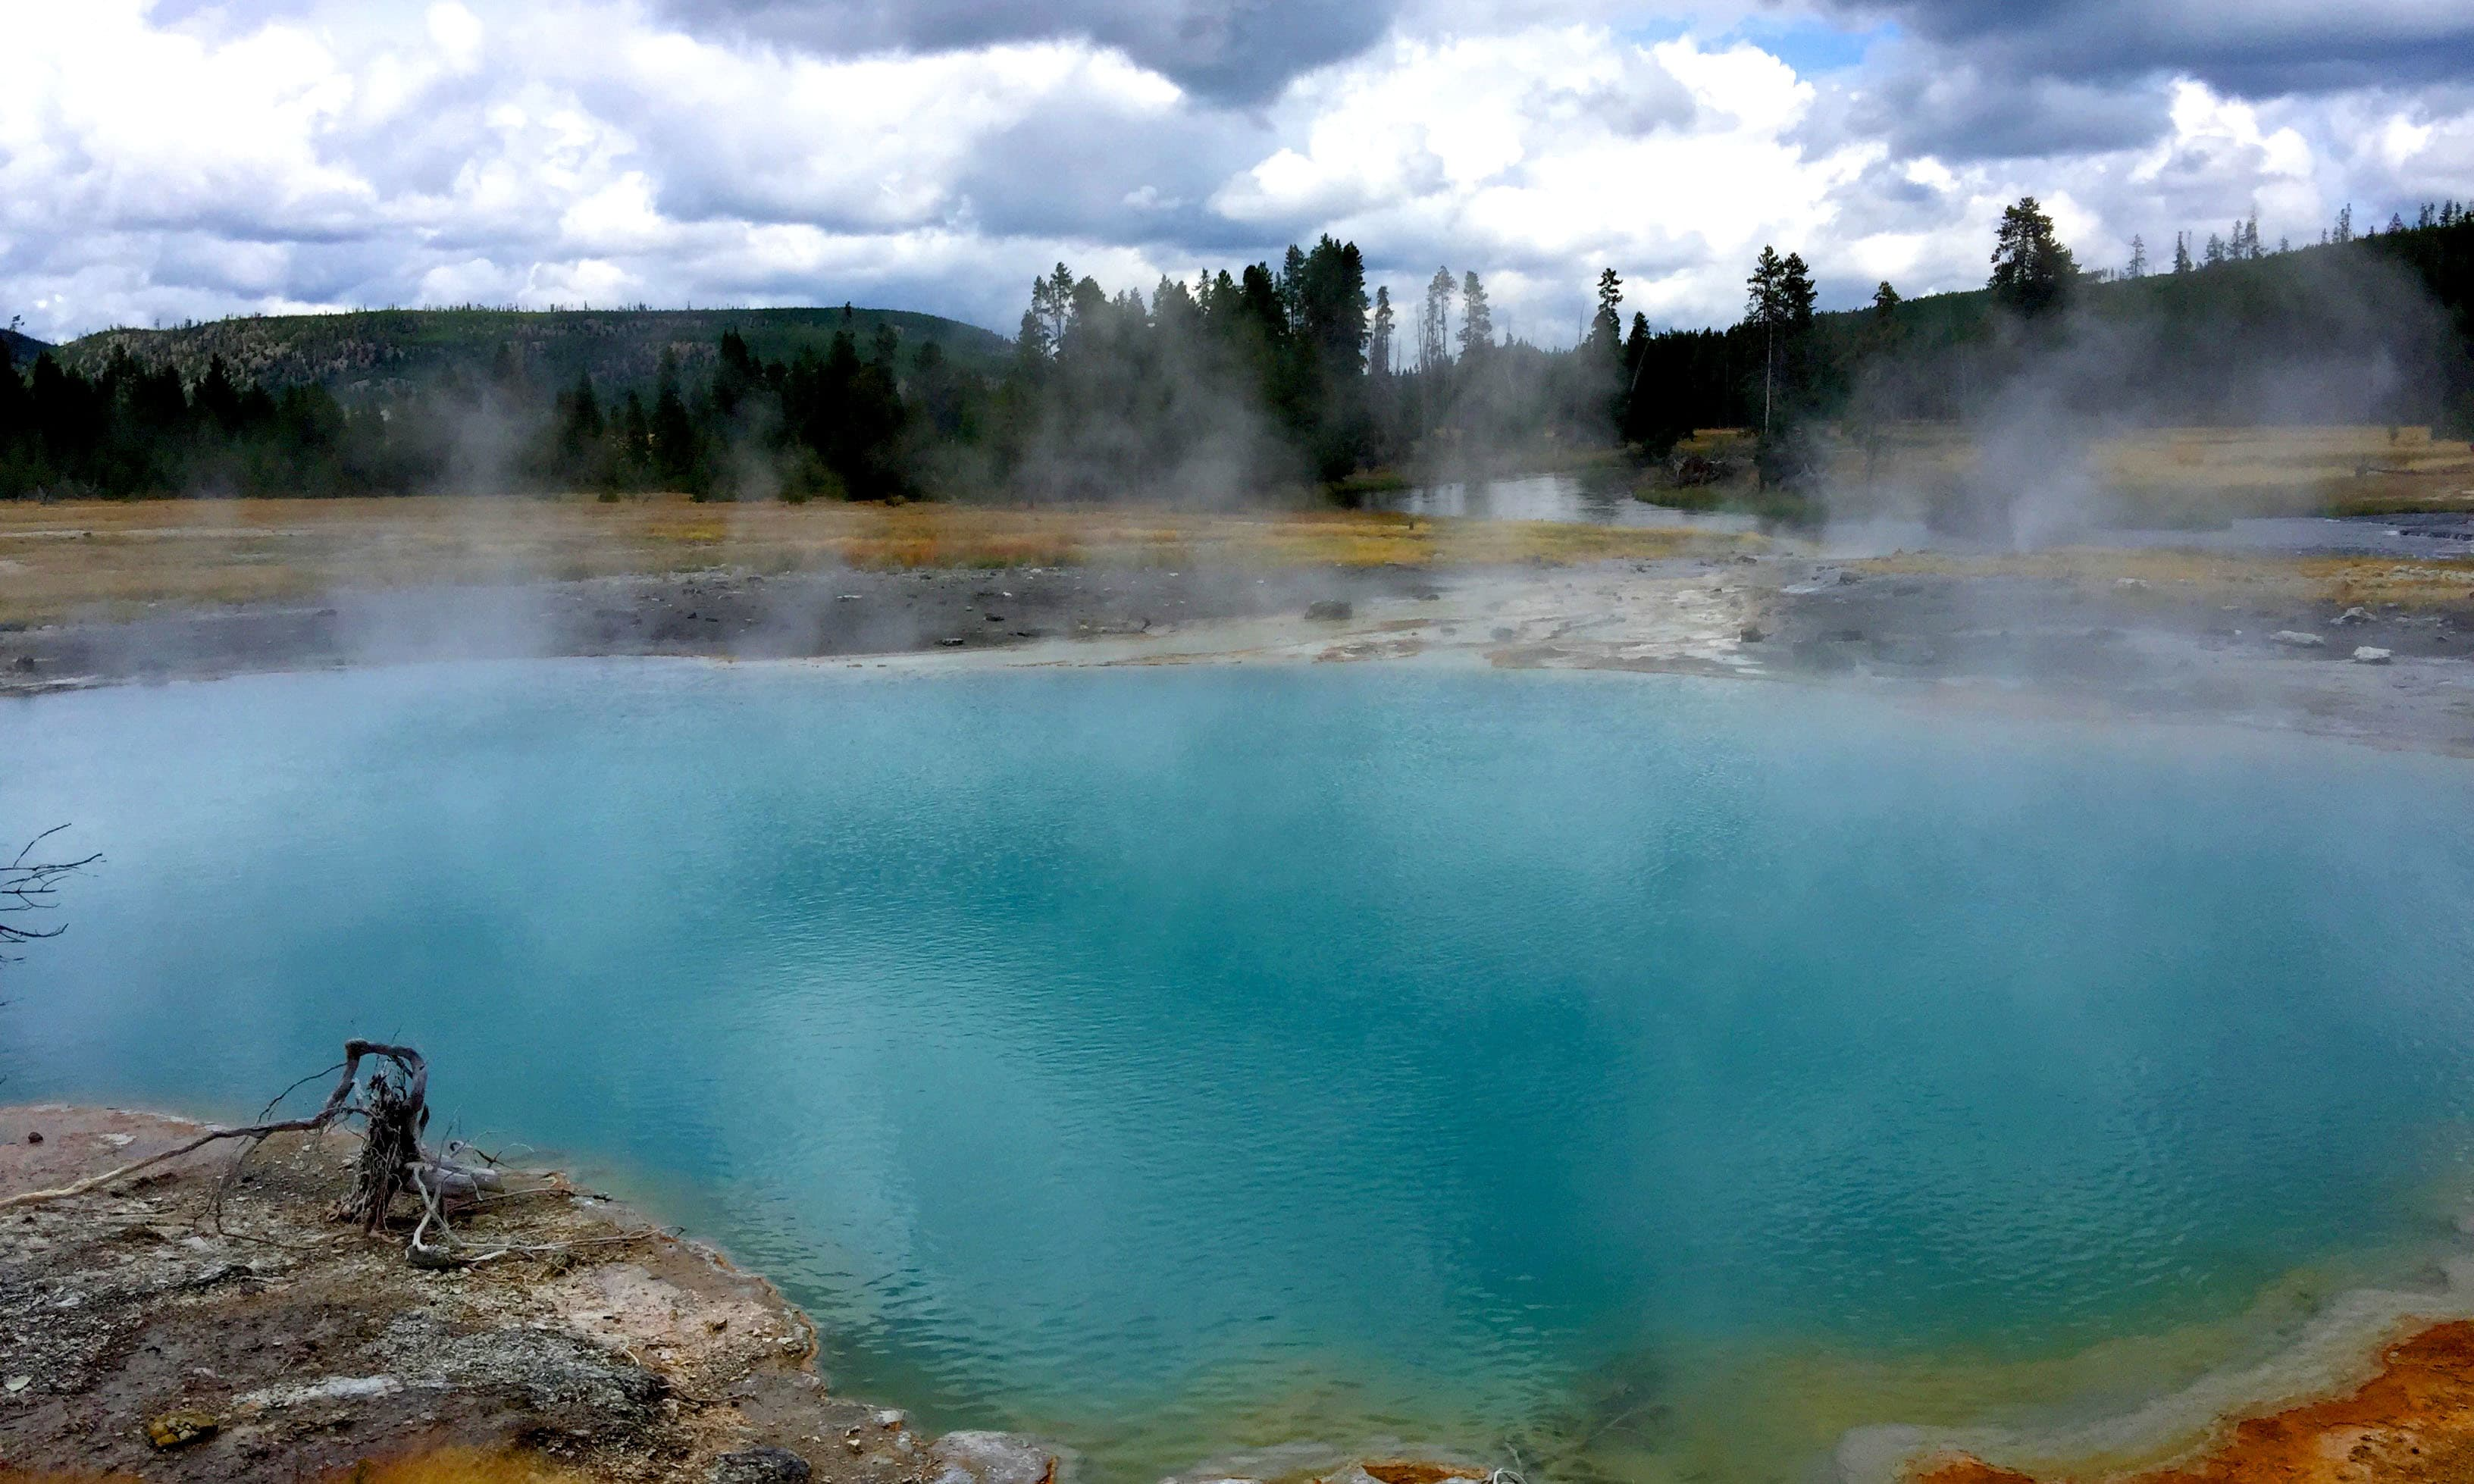 Geothermal activity at Grand Prismatic Spring. —Hassan Majeed